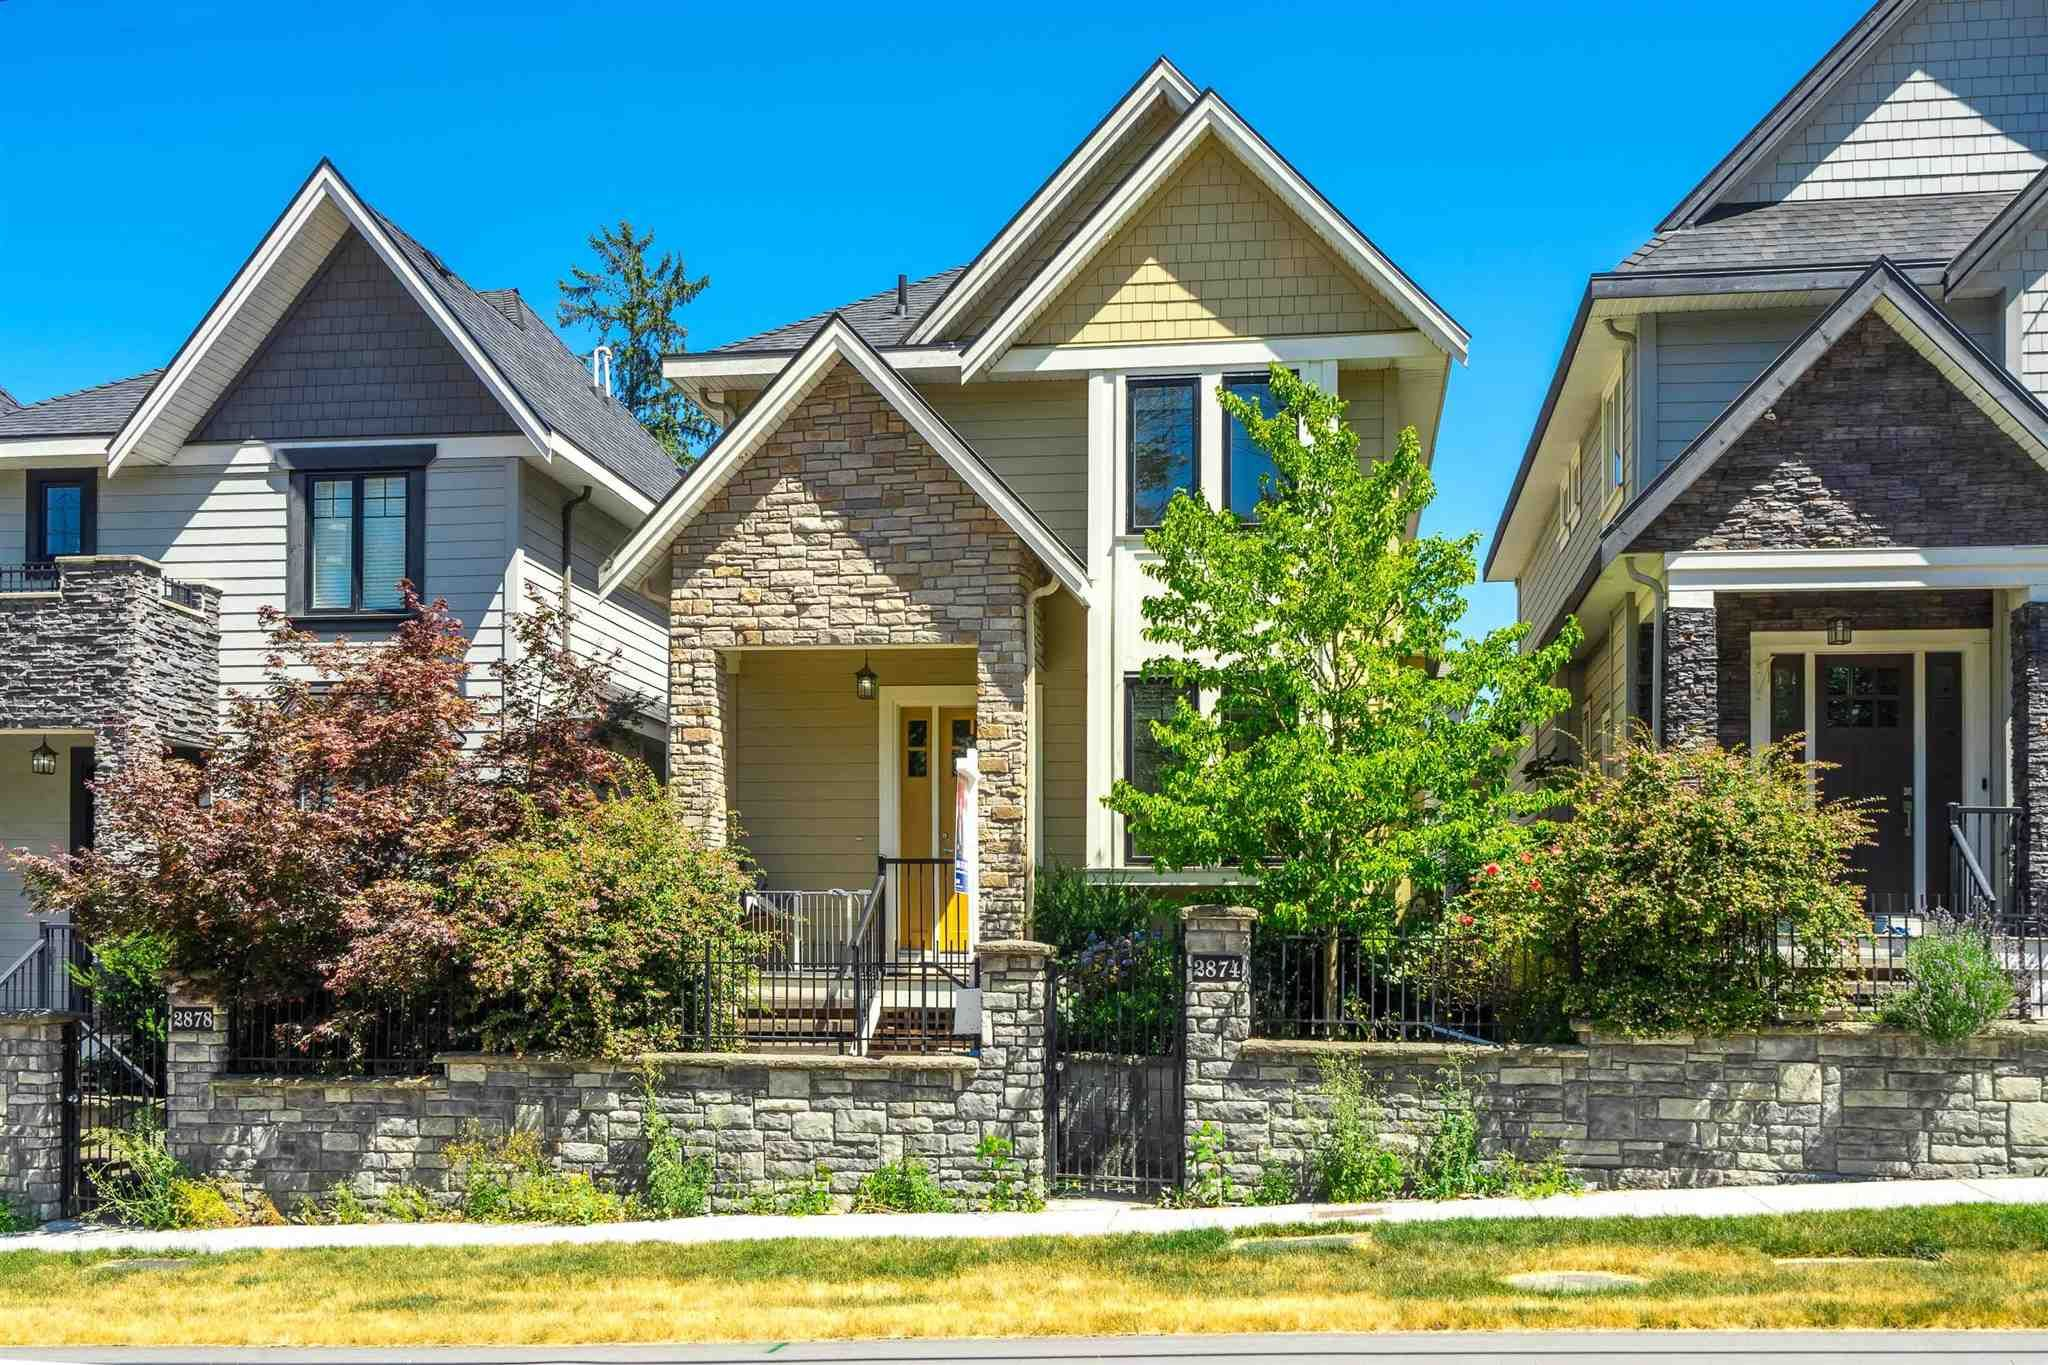 Main Photo: 2874 160 Street in Surrey: Grandview Surrey House for sale (South Surrey White Rock)  : MLS®# R2603639